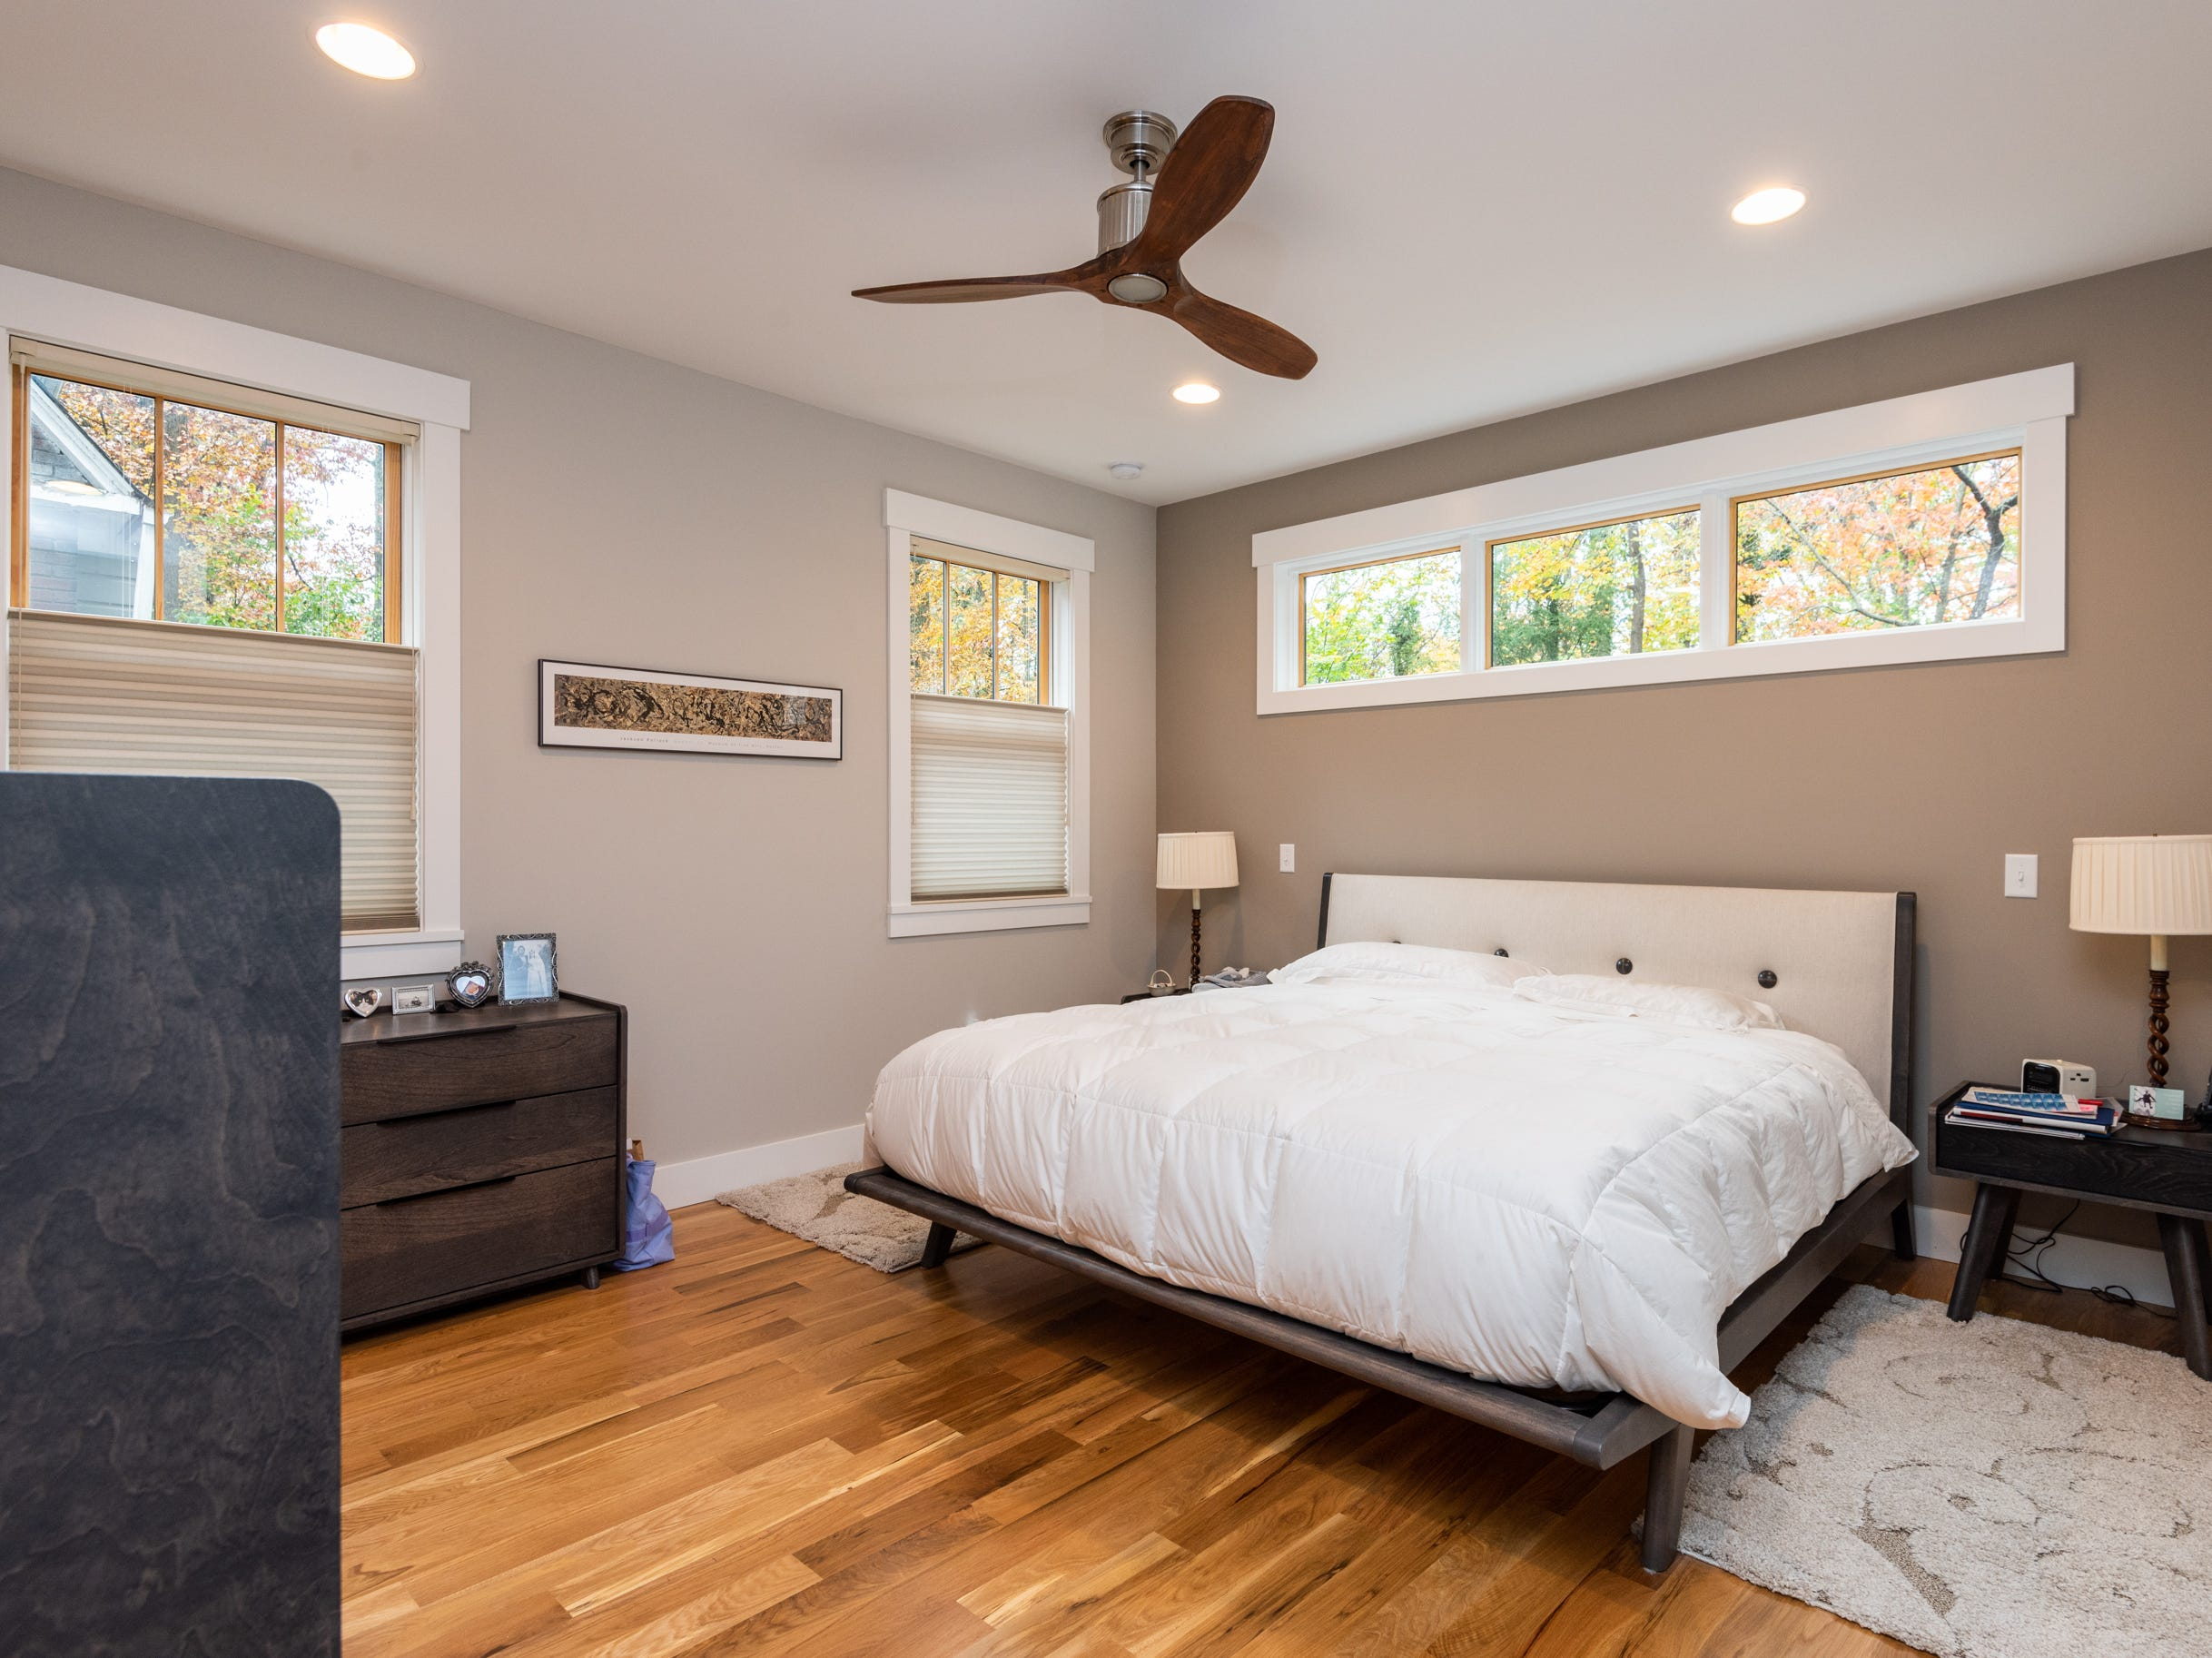 Master bedroom at the home of Pat and Ron Hart in Asheville's Montford neighborhood.